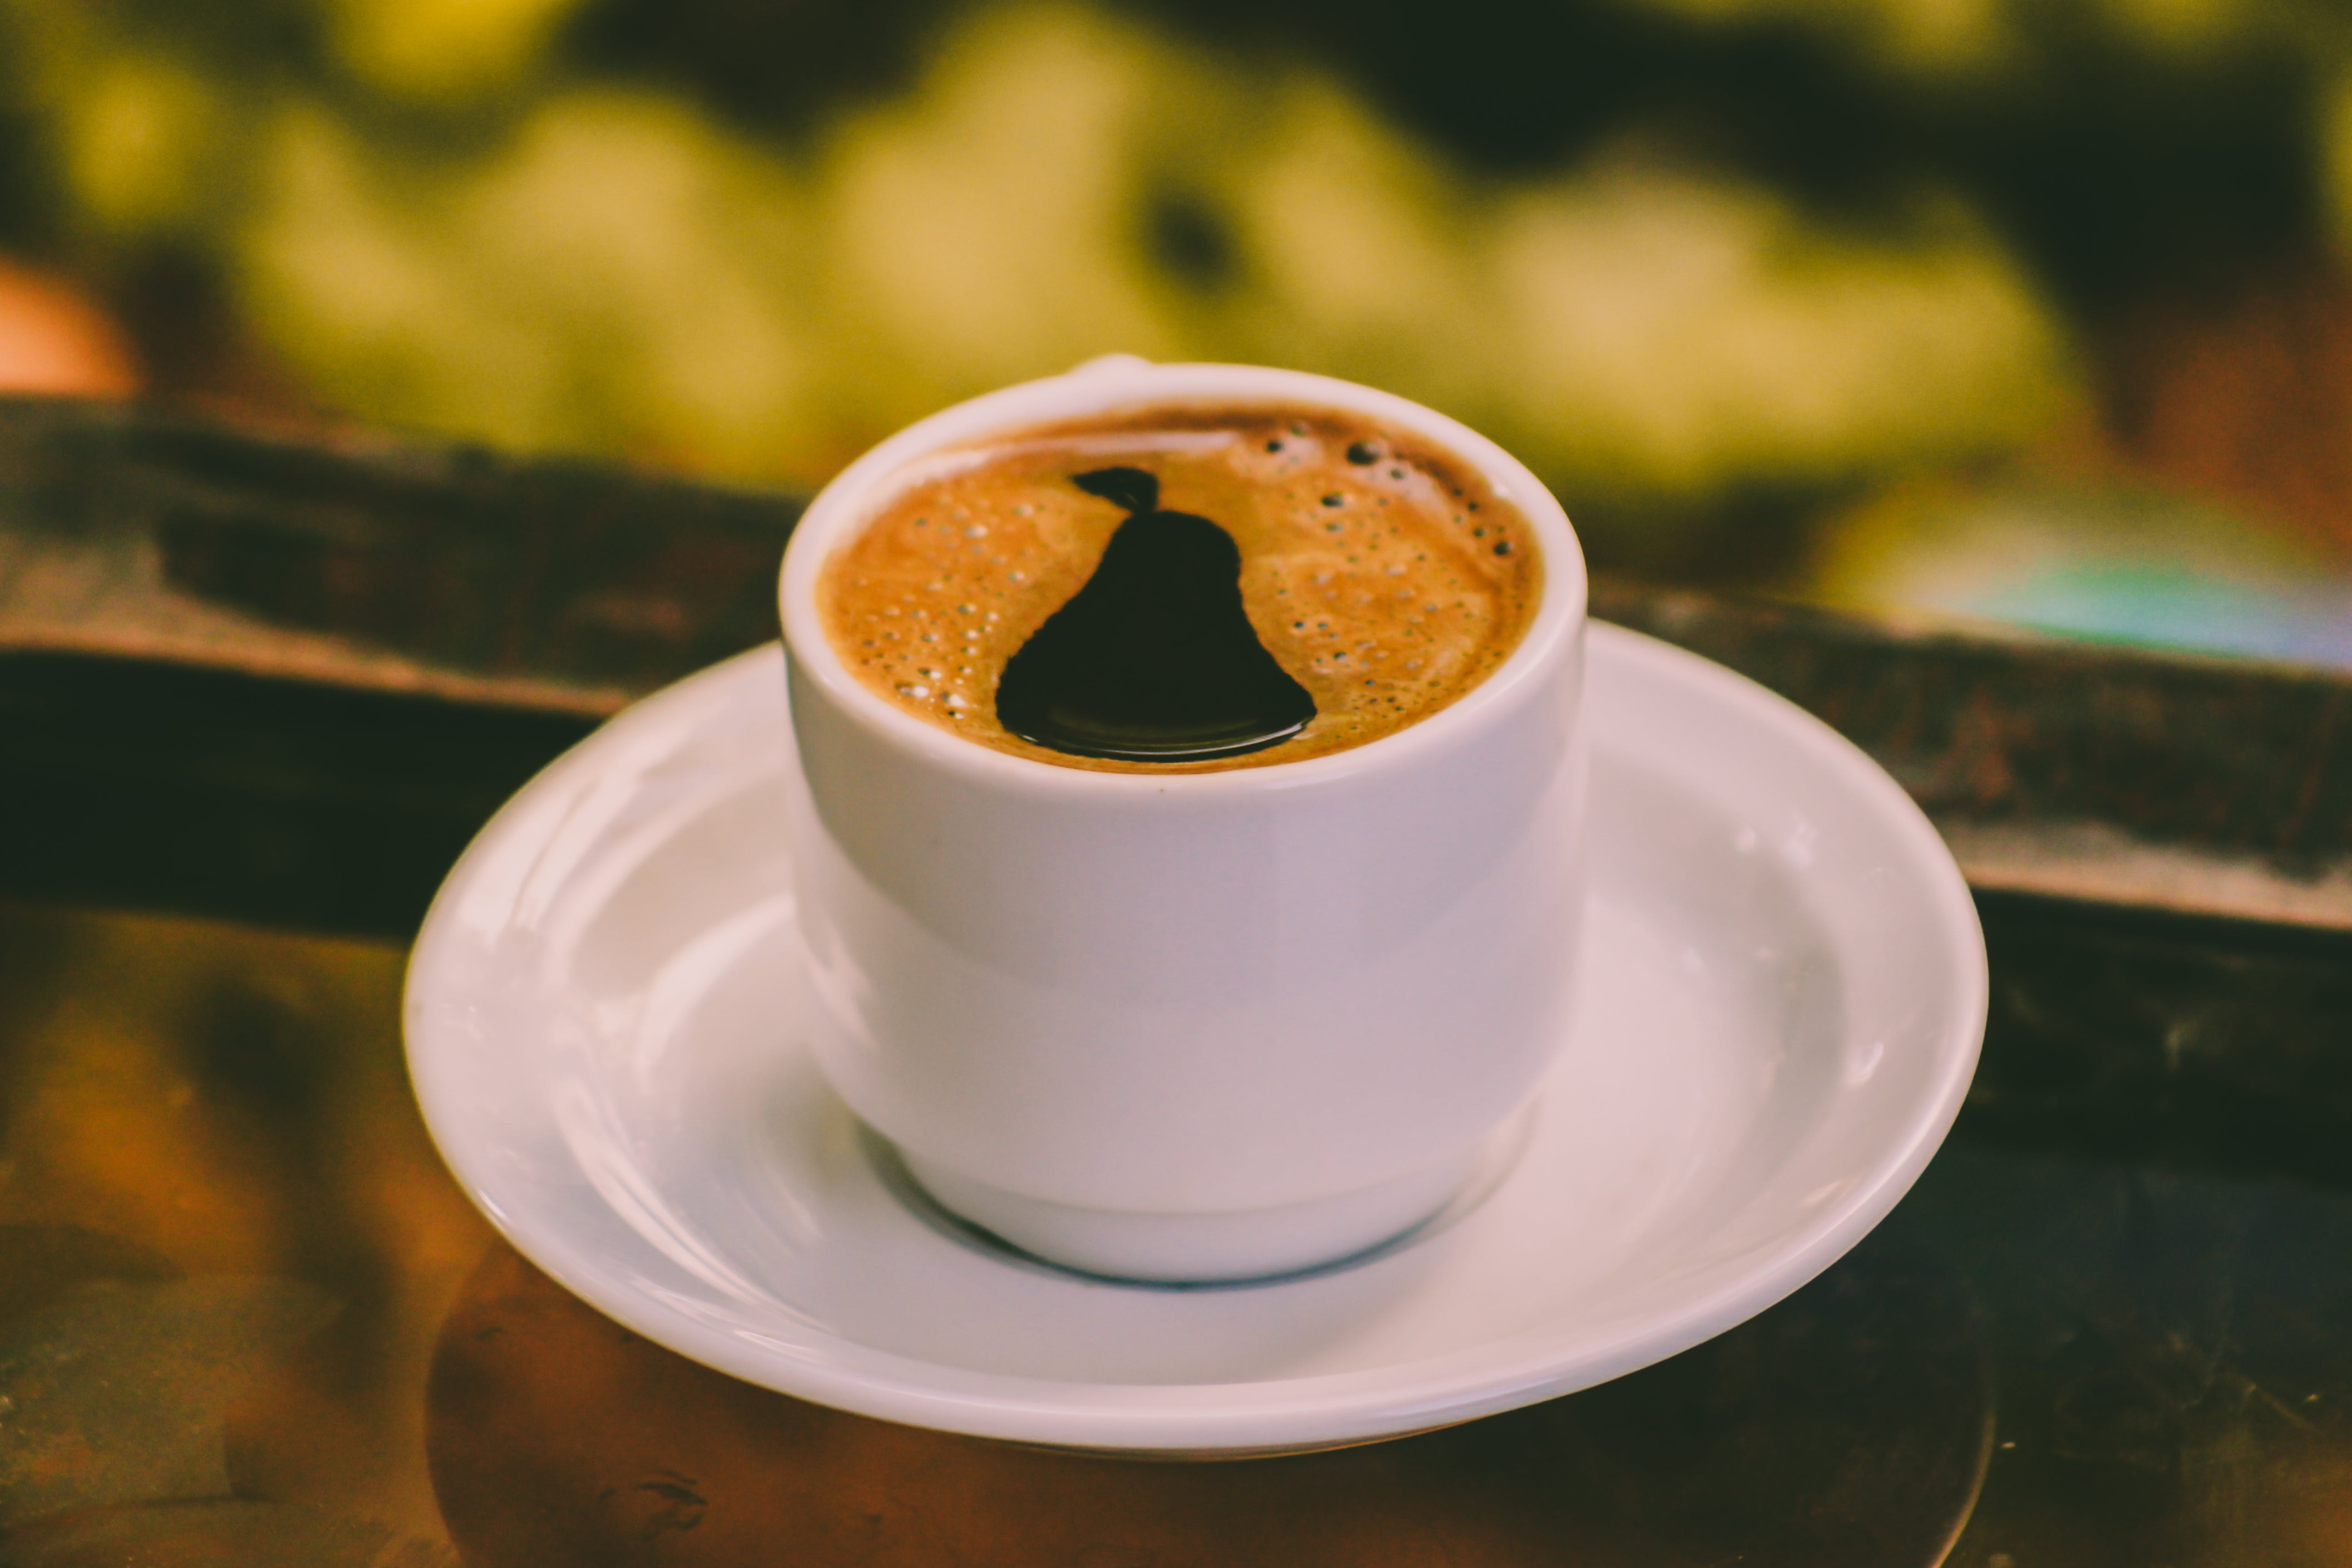 Close-Up Photography of Coffee